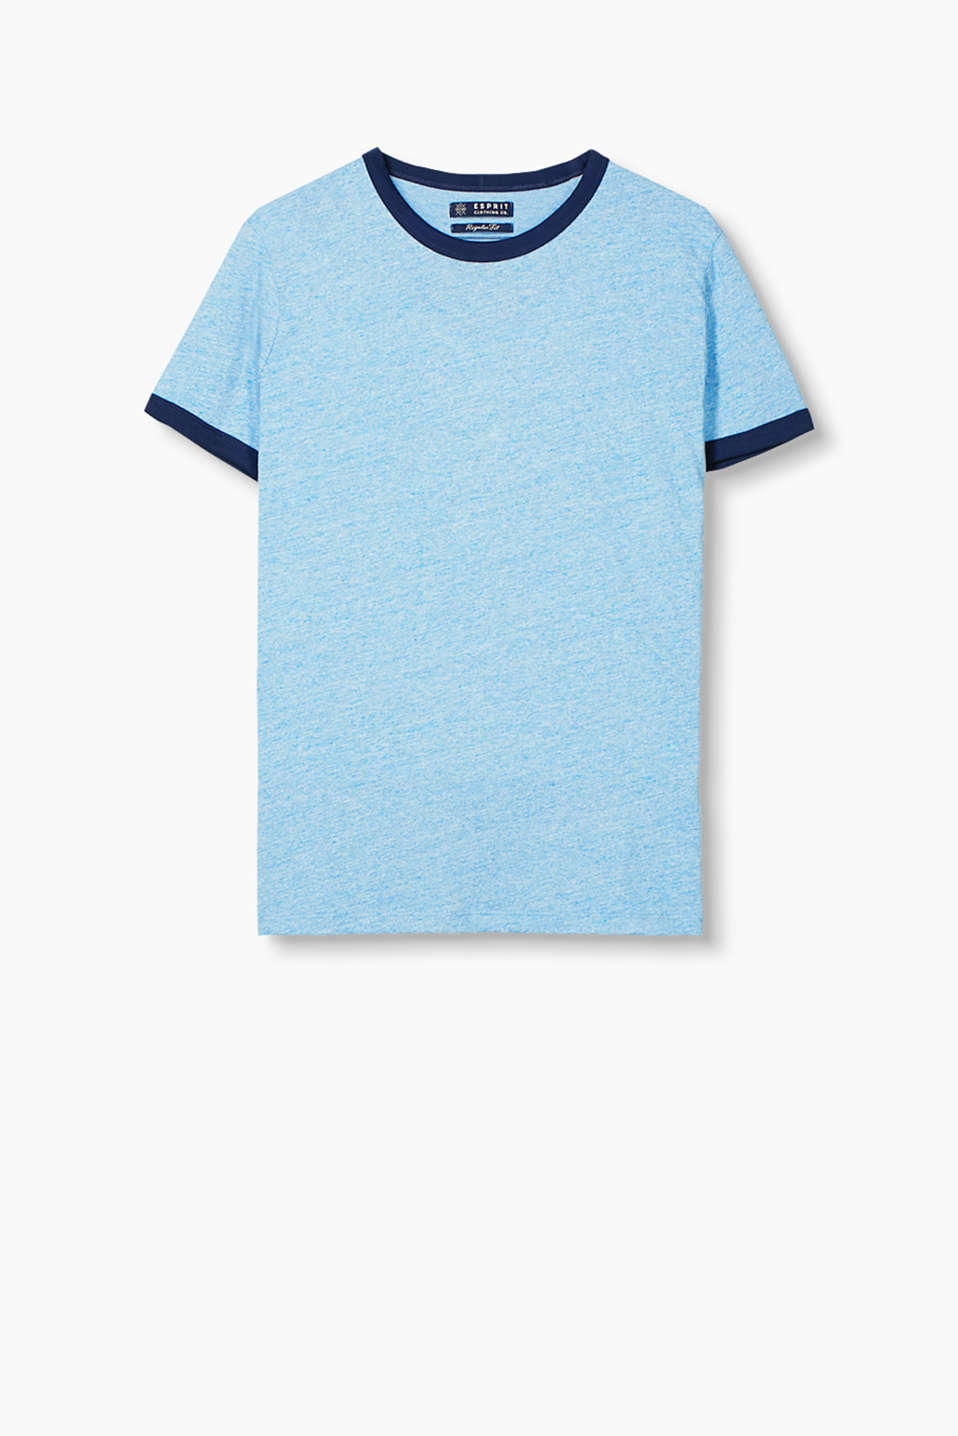 Cool retro look: T-shirt with contrast piping, in blended cotton